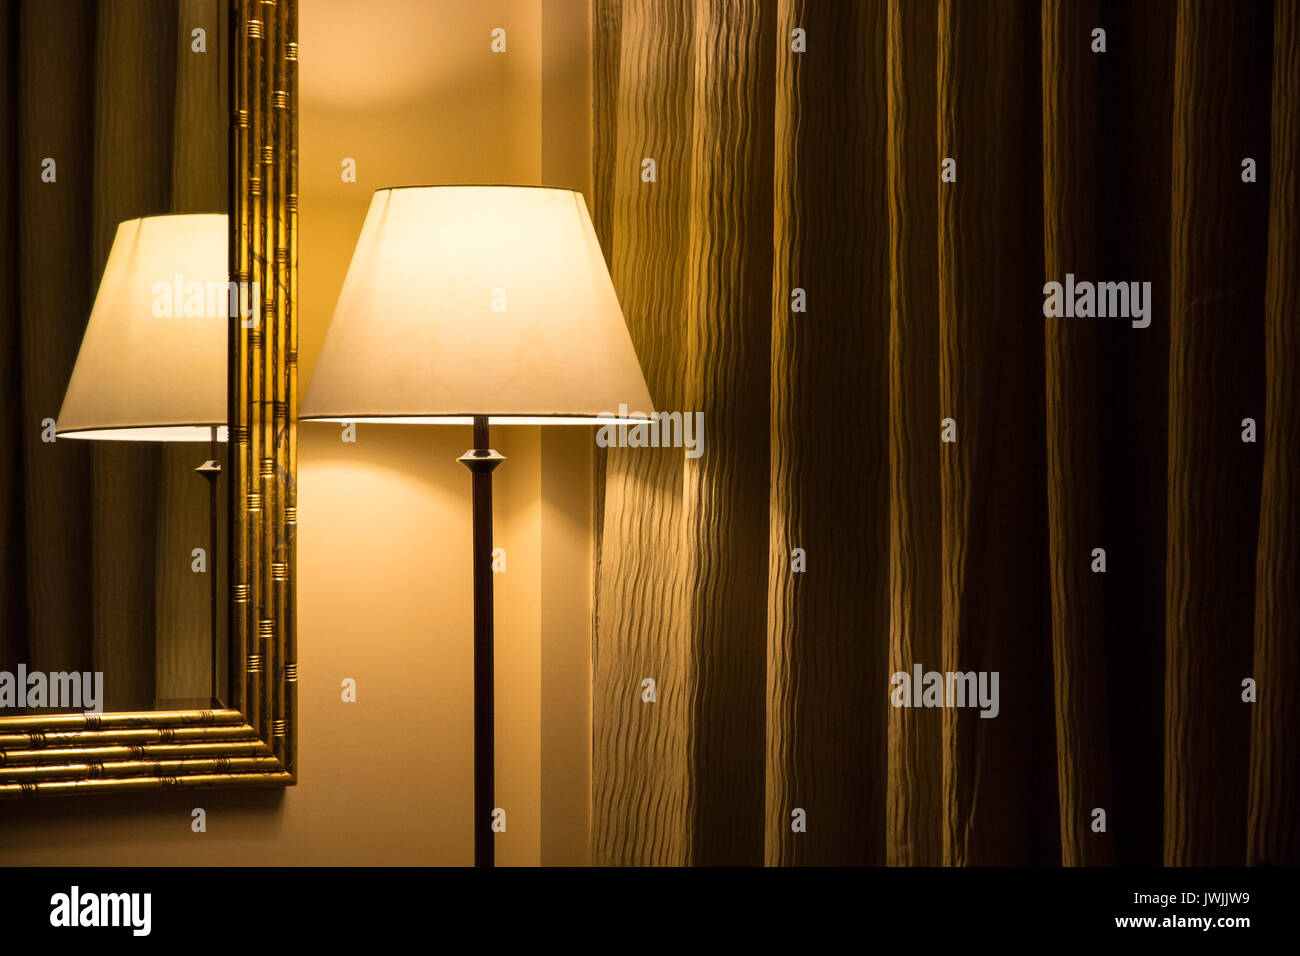 Standing Lamp And Reflection In A Mirror Of Hotel Room With Closed Dark Curtains Warm Incandescent Light Concept Anonymous Sterile Alone